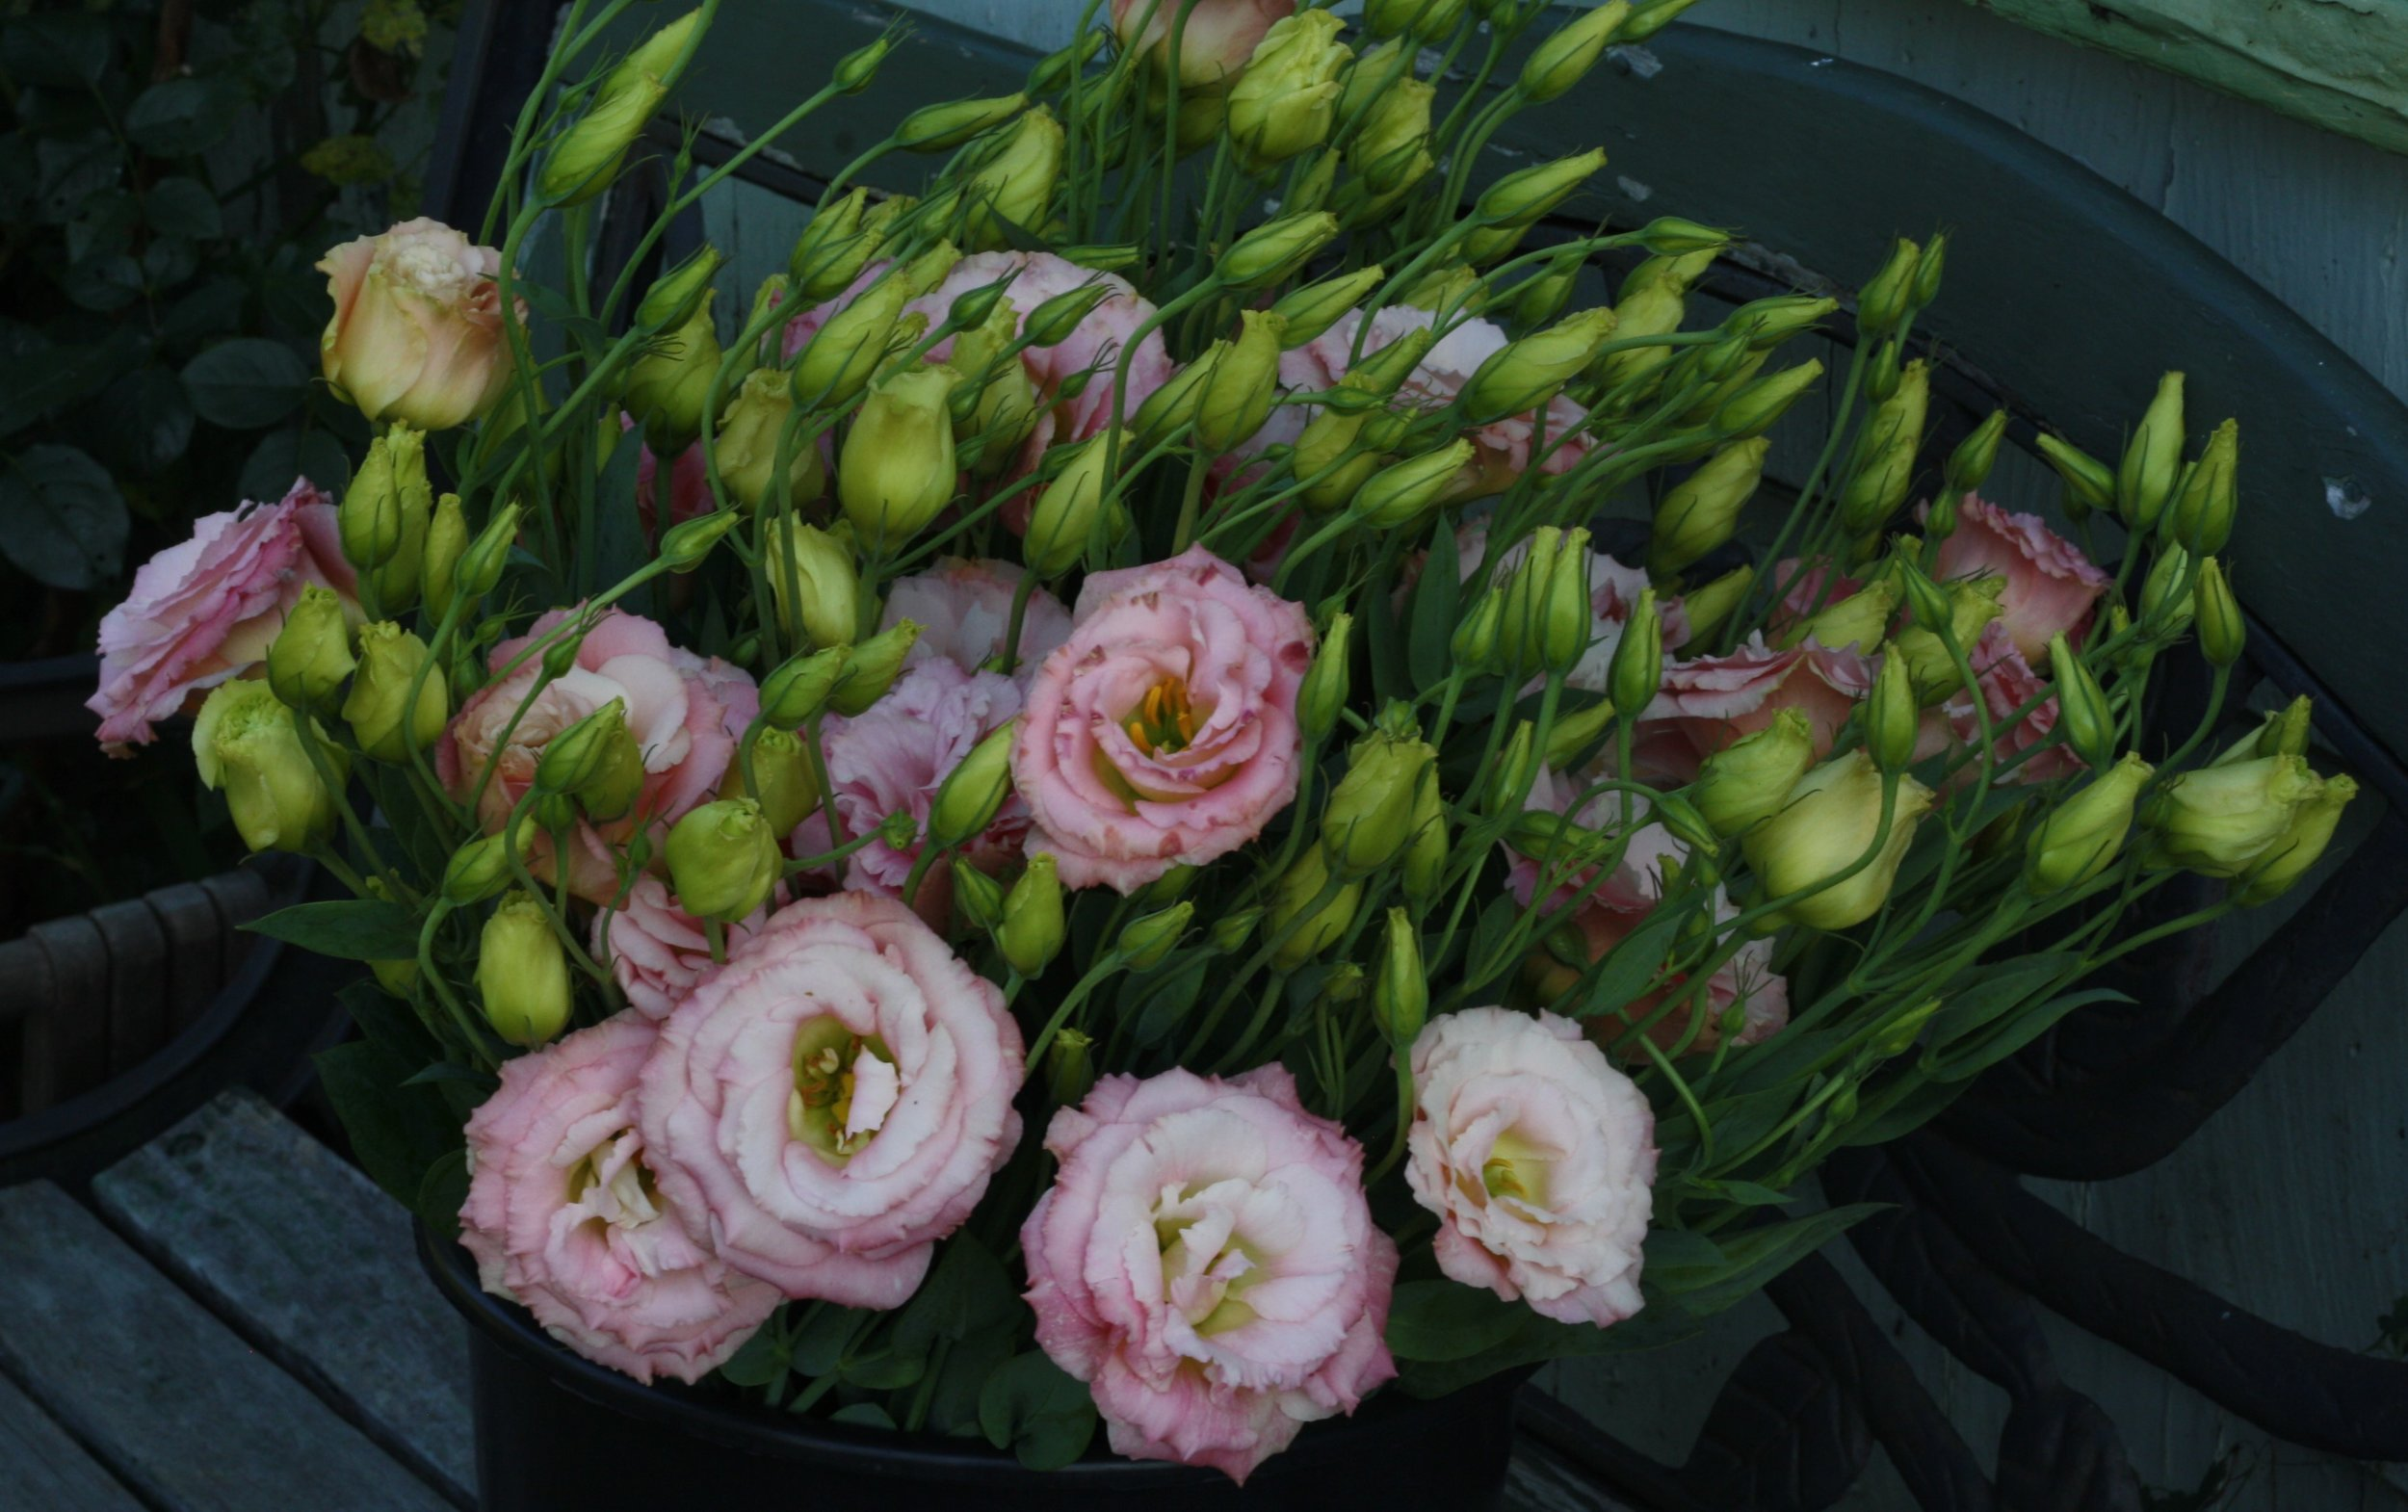 lisianthus 'Echo champagne' grown by Hedgerow Flower Company in Nova Scotia.